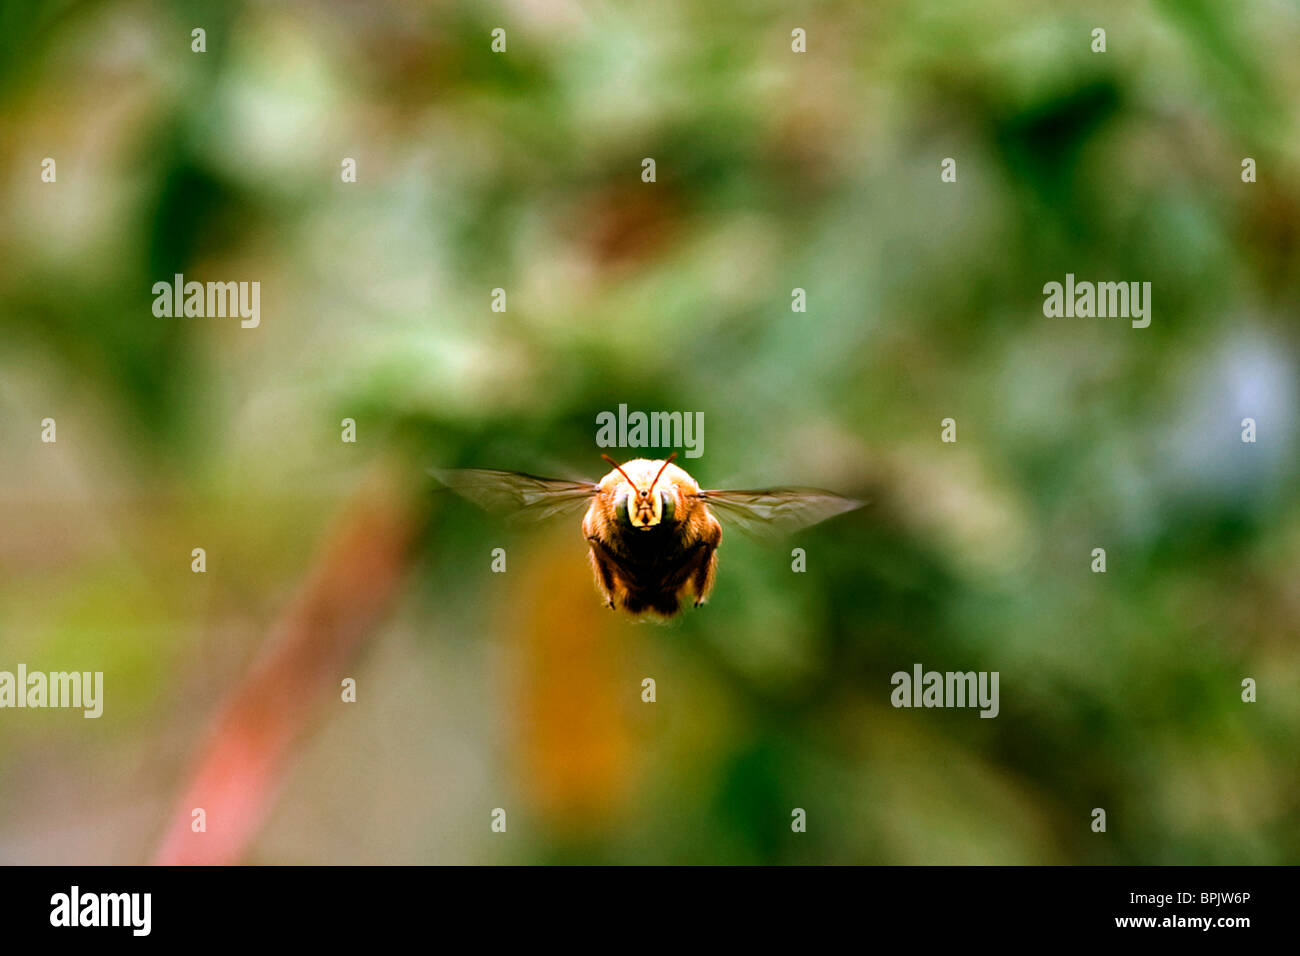 South America, Ecuador, Galapagos Islands, Isabella Island, Large Stingless Bee flying - Stock Image